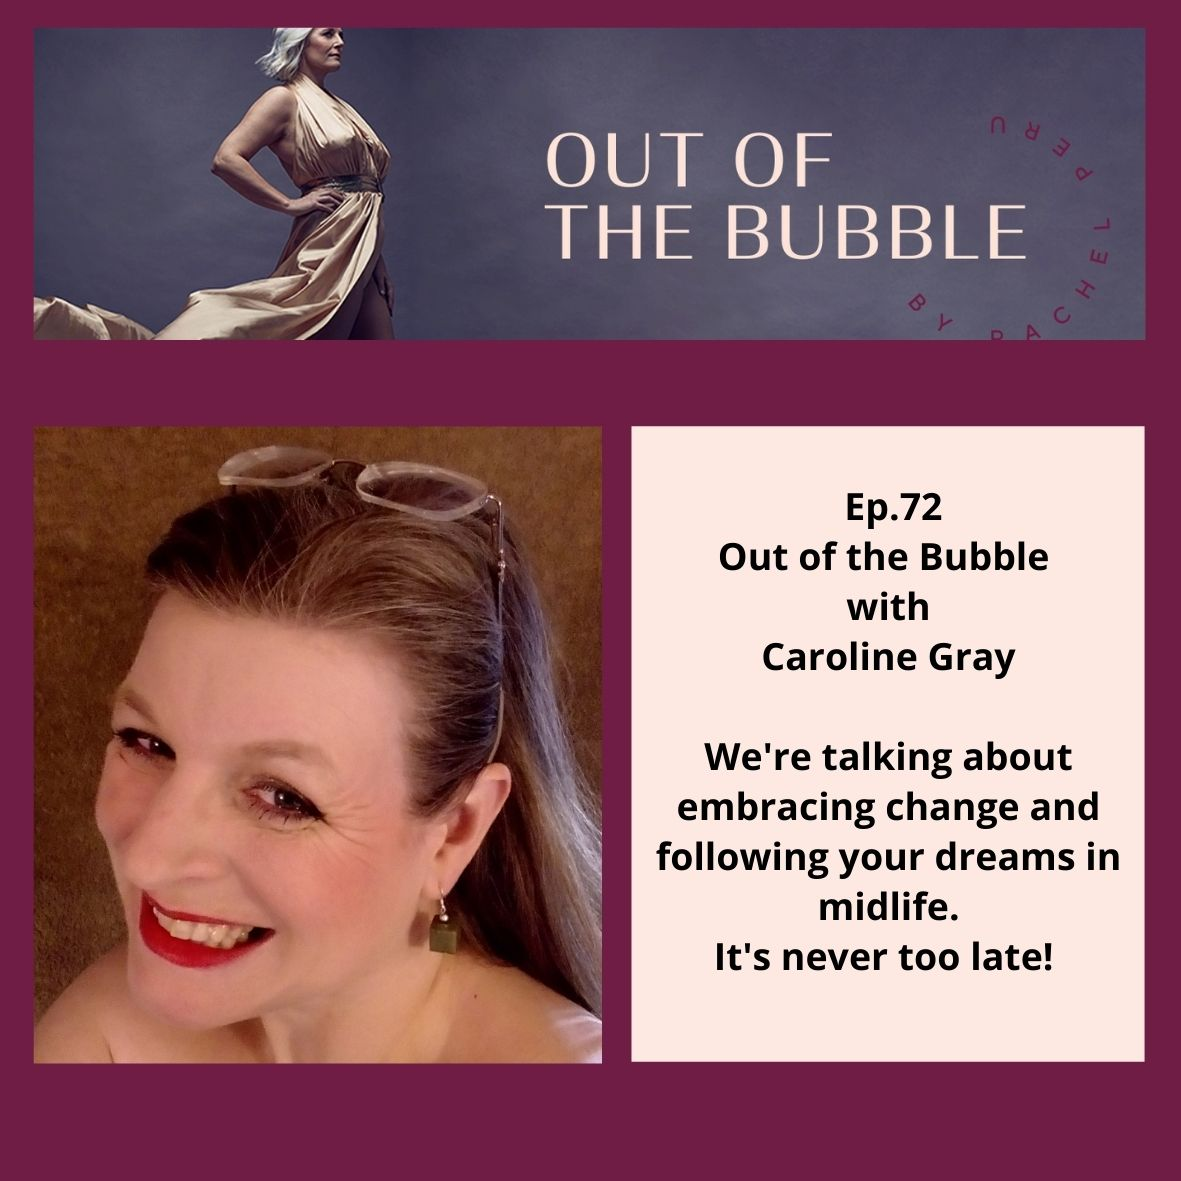 Ep.72 Out of the Bubble with fashion and accessories designer Caroline Gray